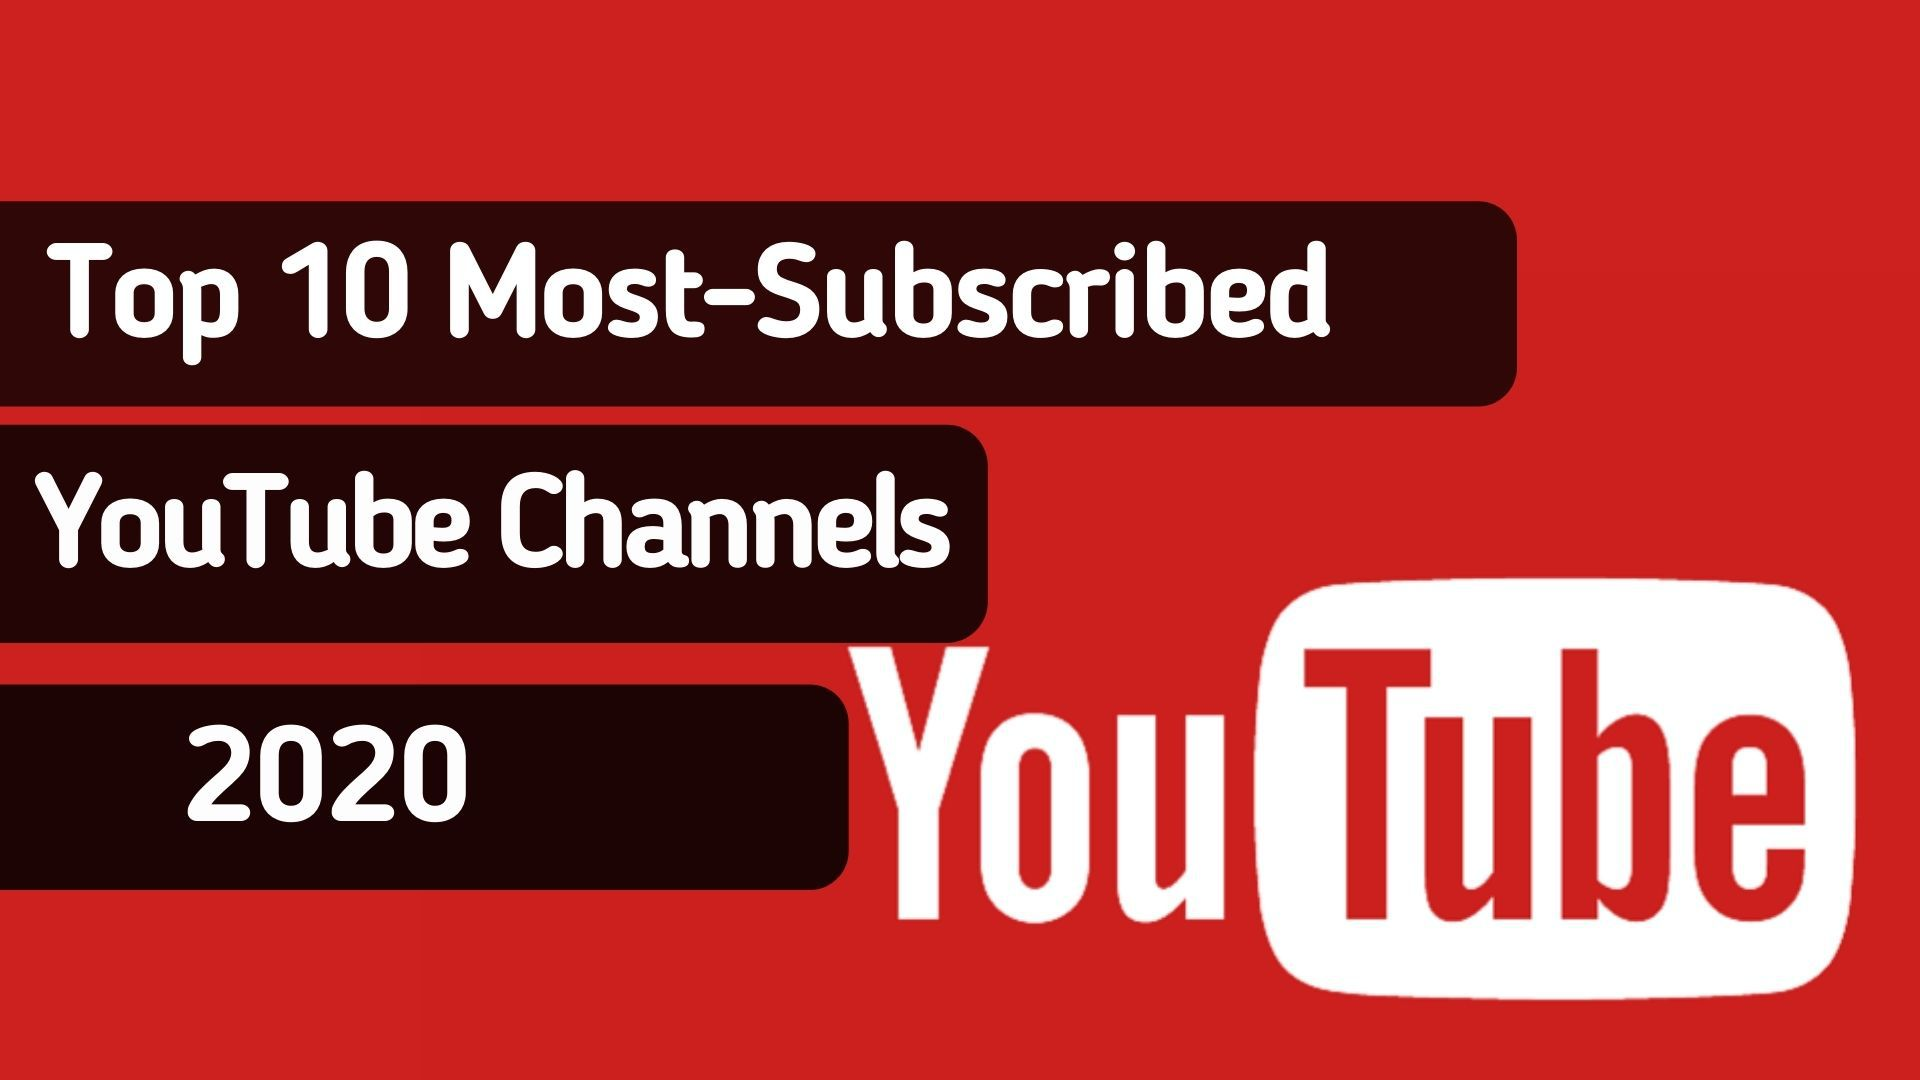 Top 10 Most-Subscribed YouTube Channels in 2020